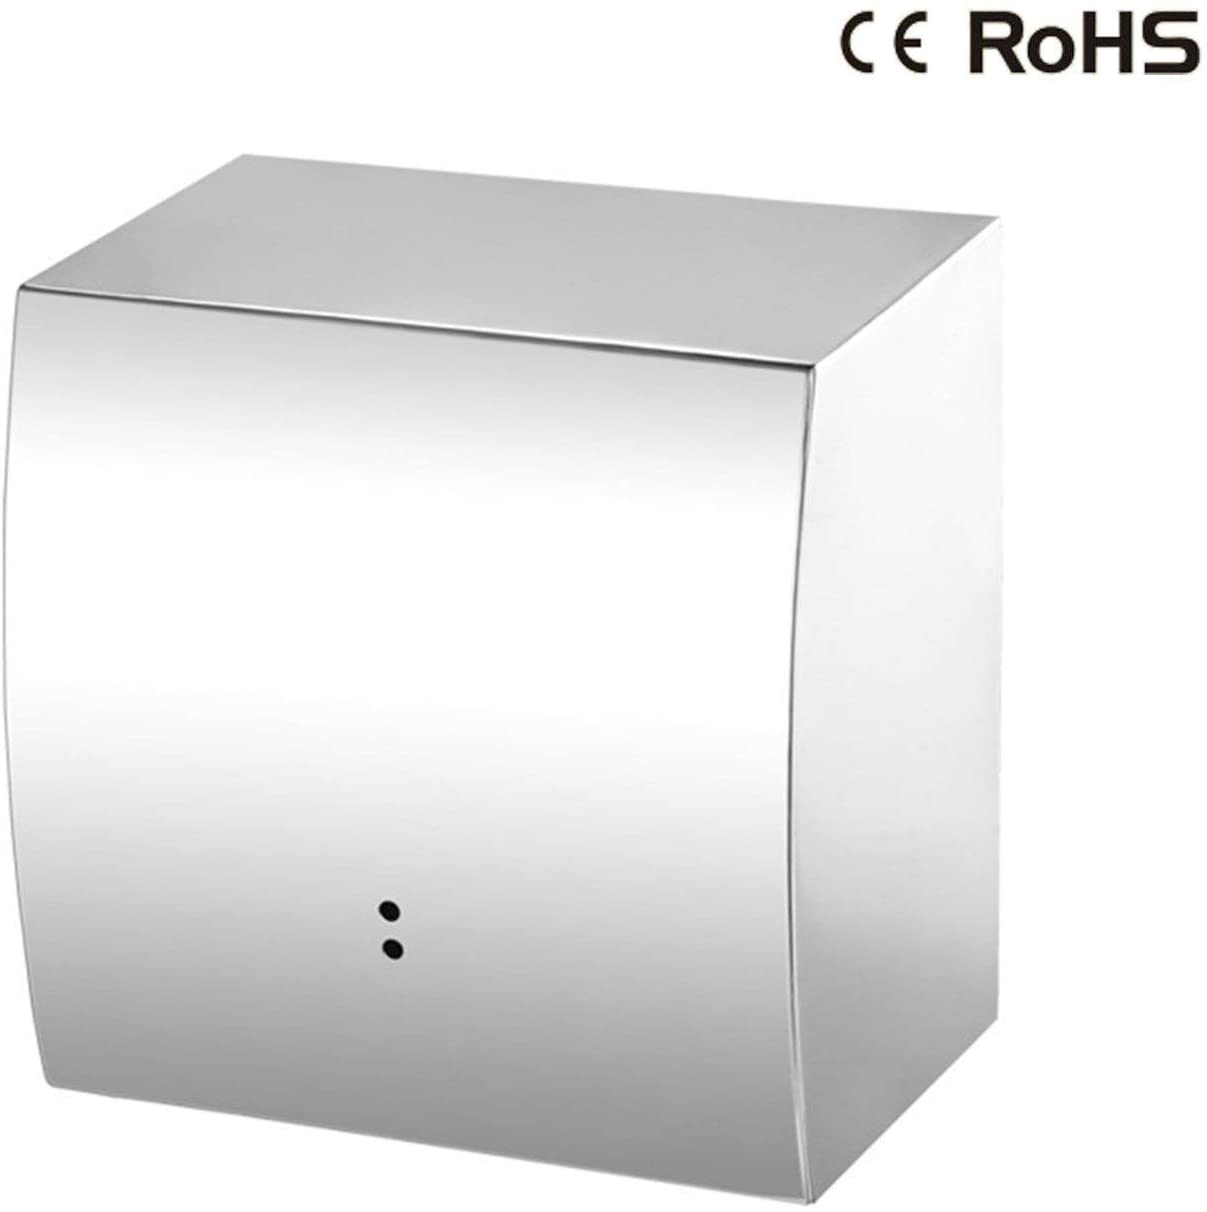 XIAOTIAN 304 Stainless Steel Induction high Speed Hand Dryer, Hotel Wall-Mounted